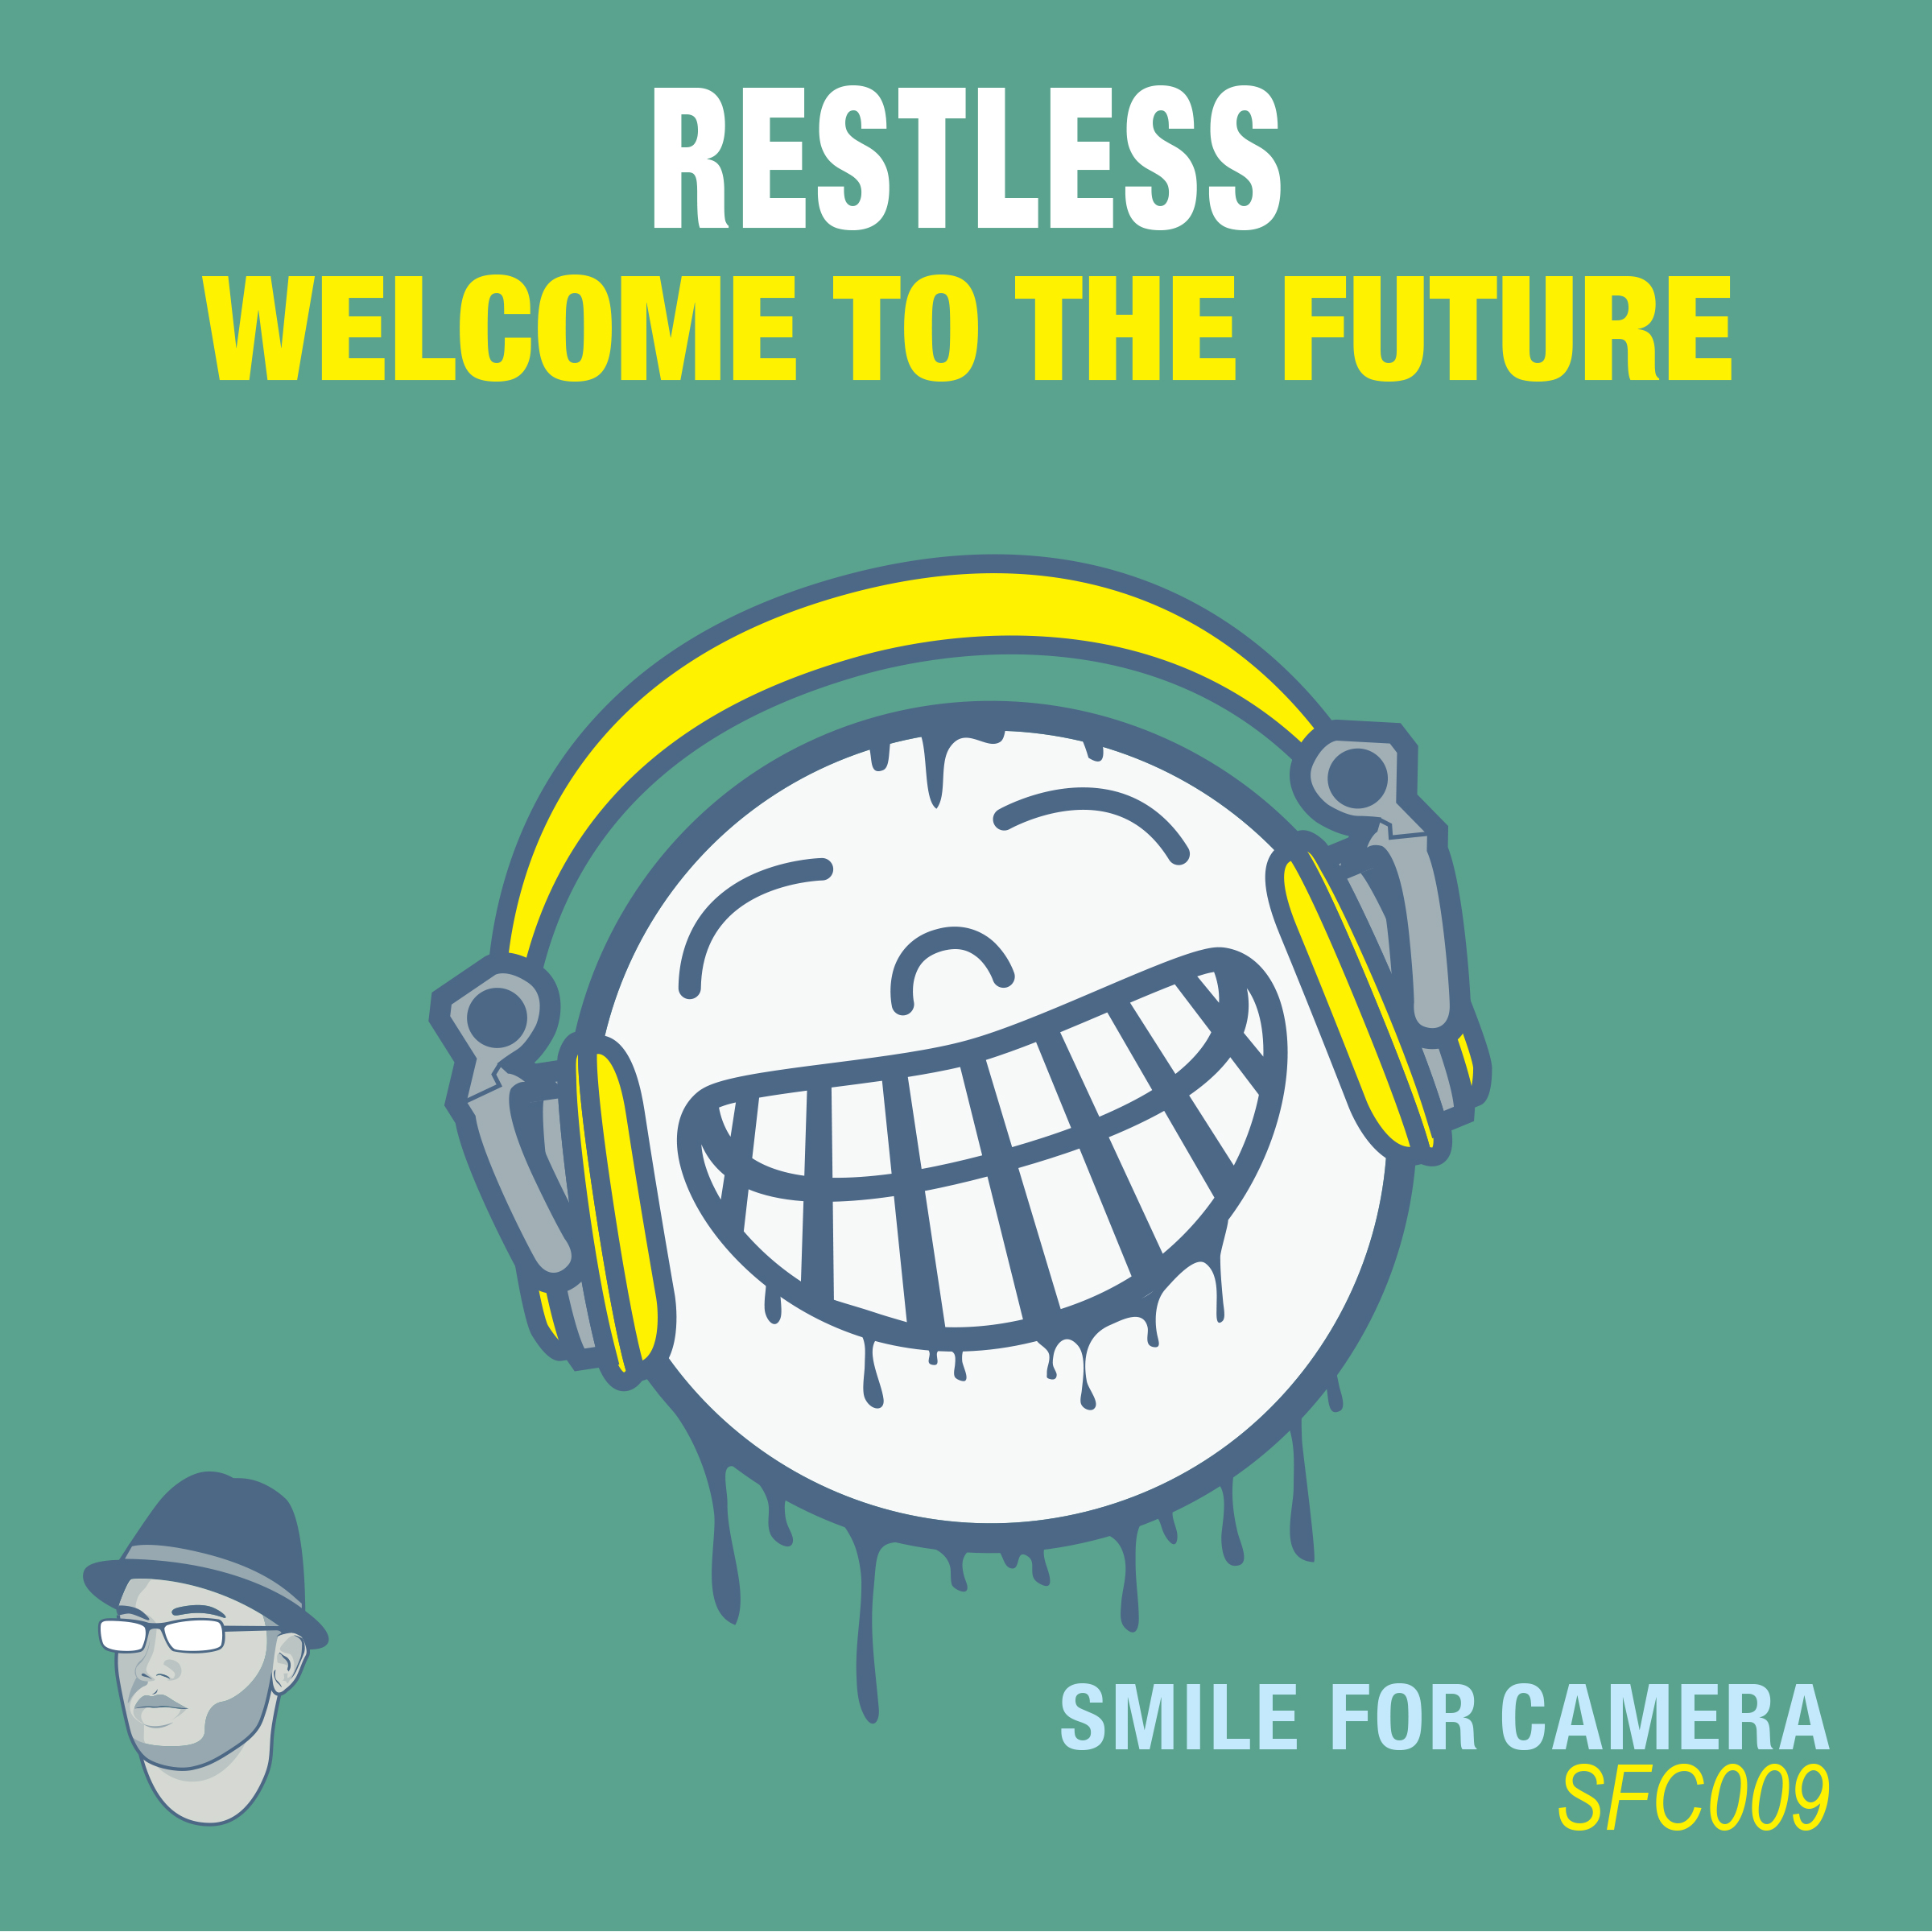 RESTLESS - WELCOME TO THE FUTURE